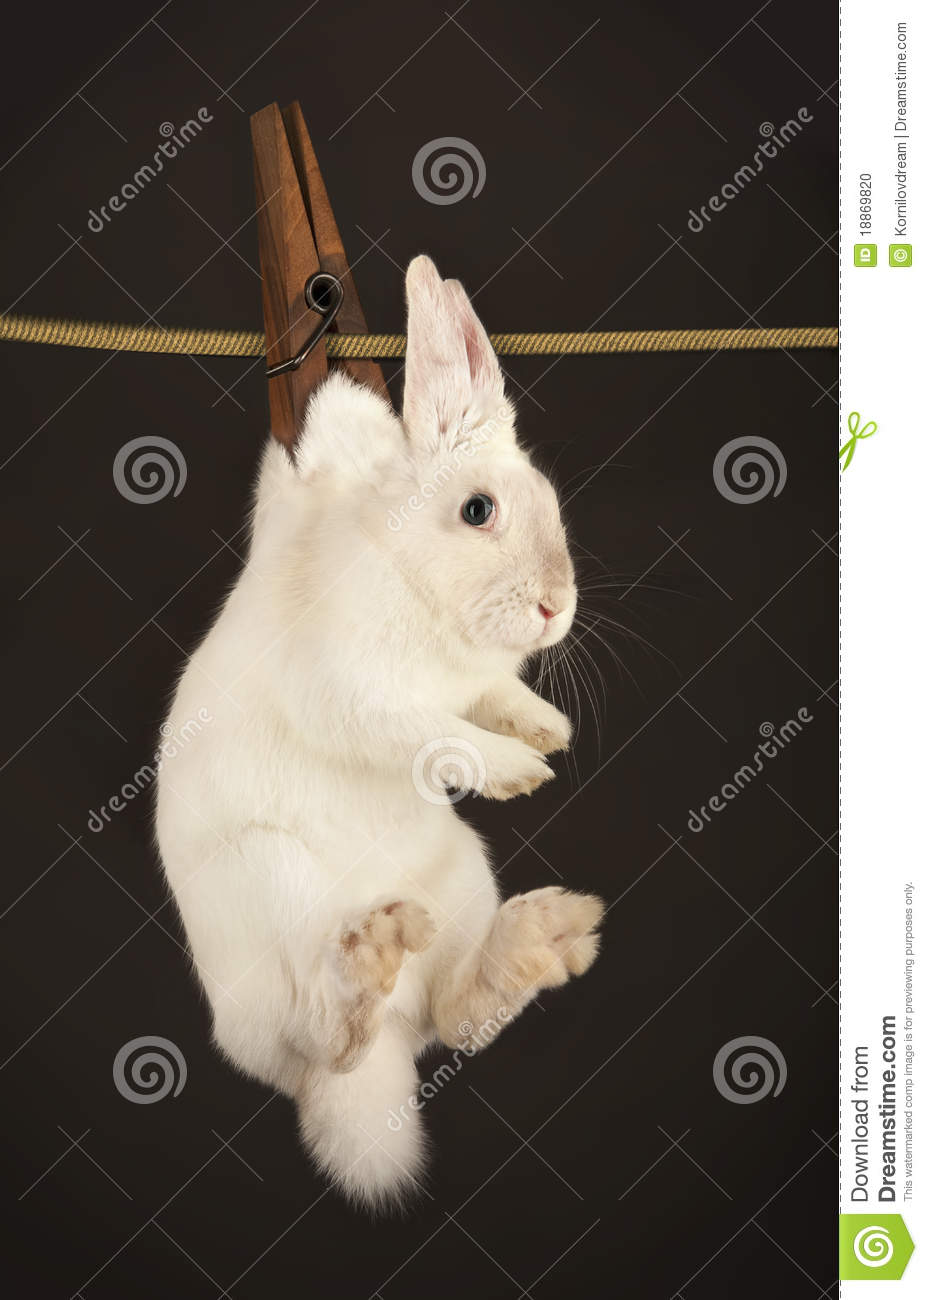 rabbit hanging on the clothesline stock photo